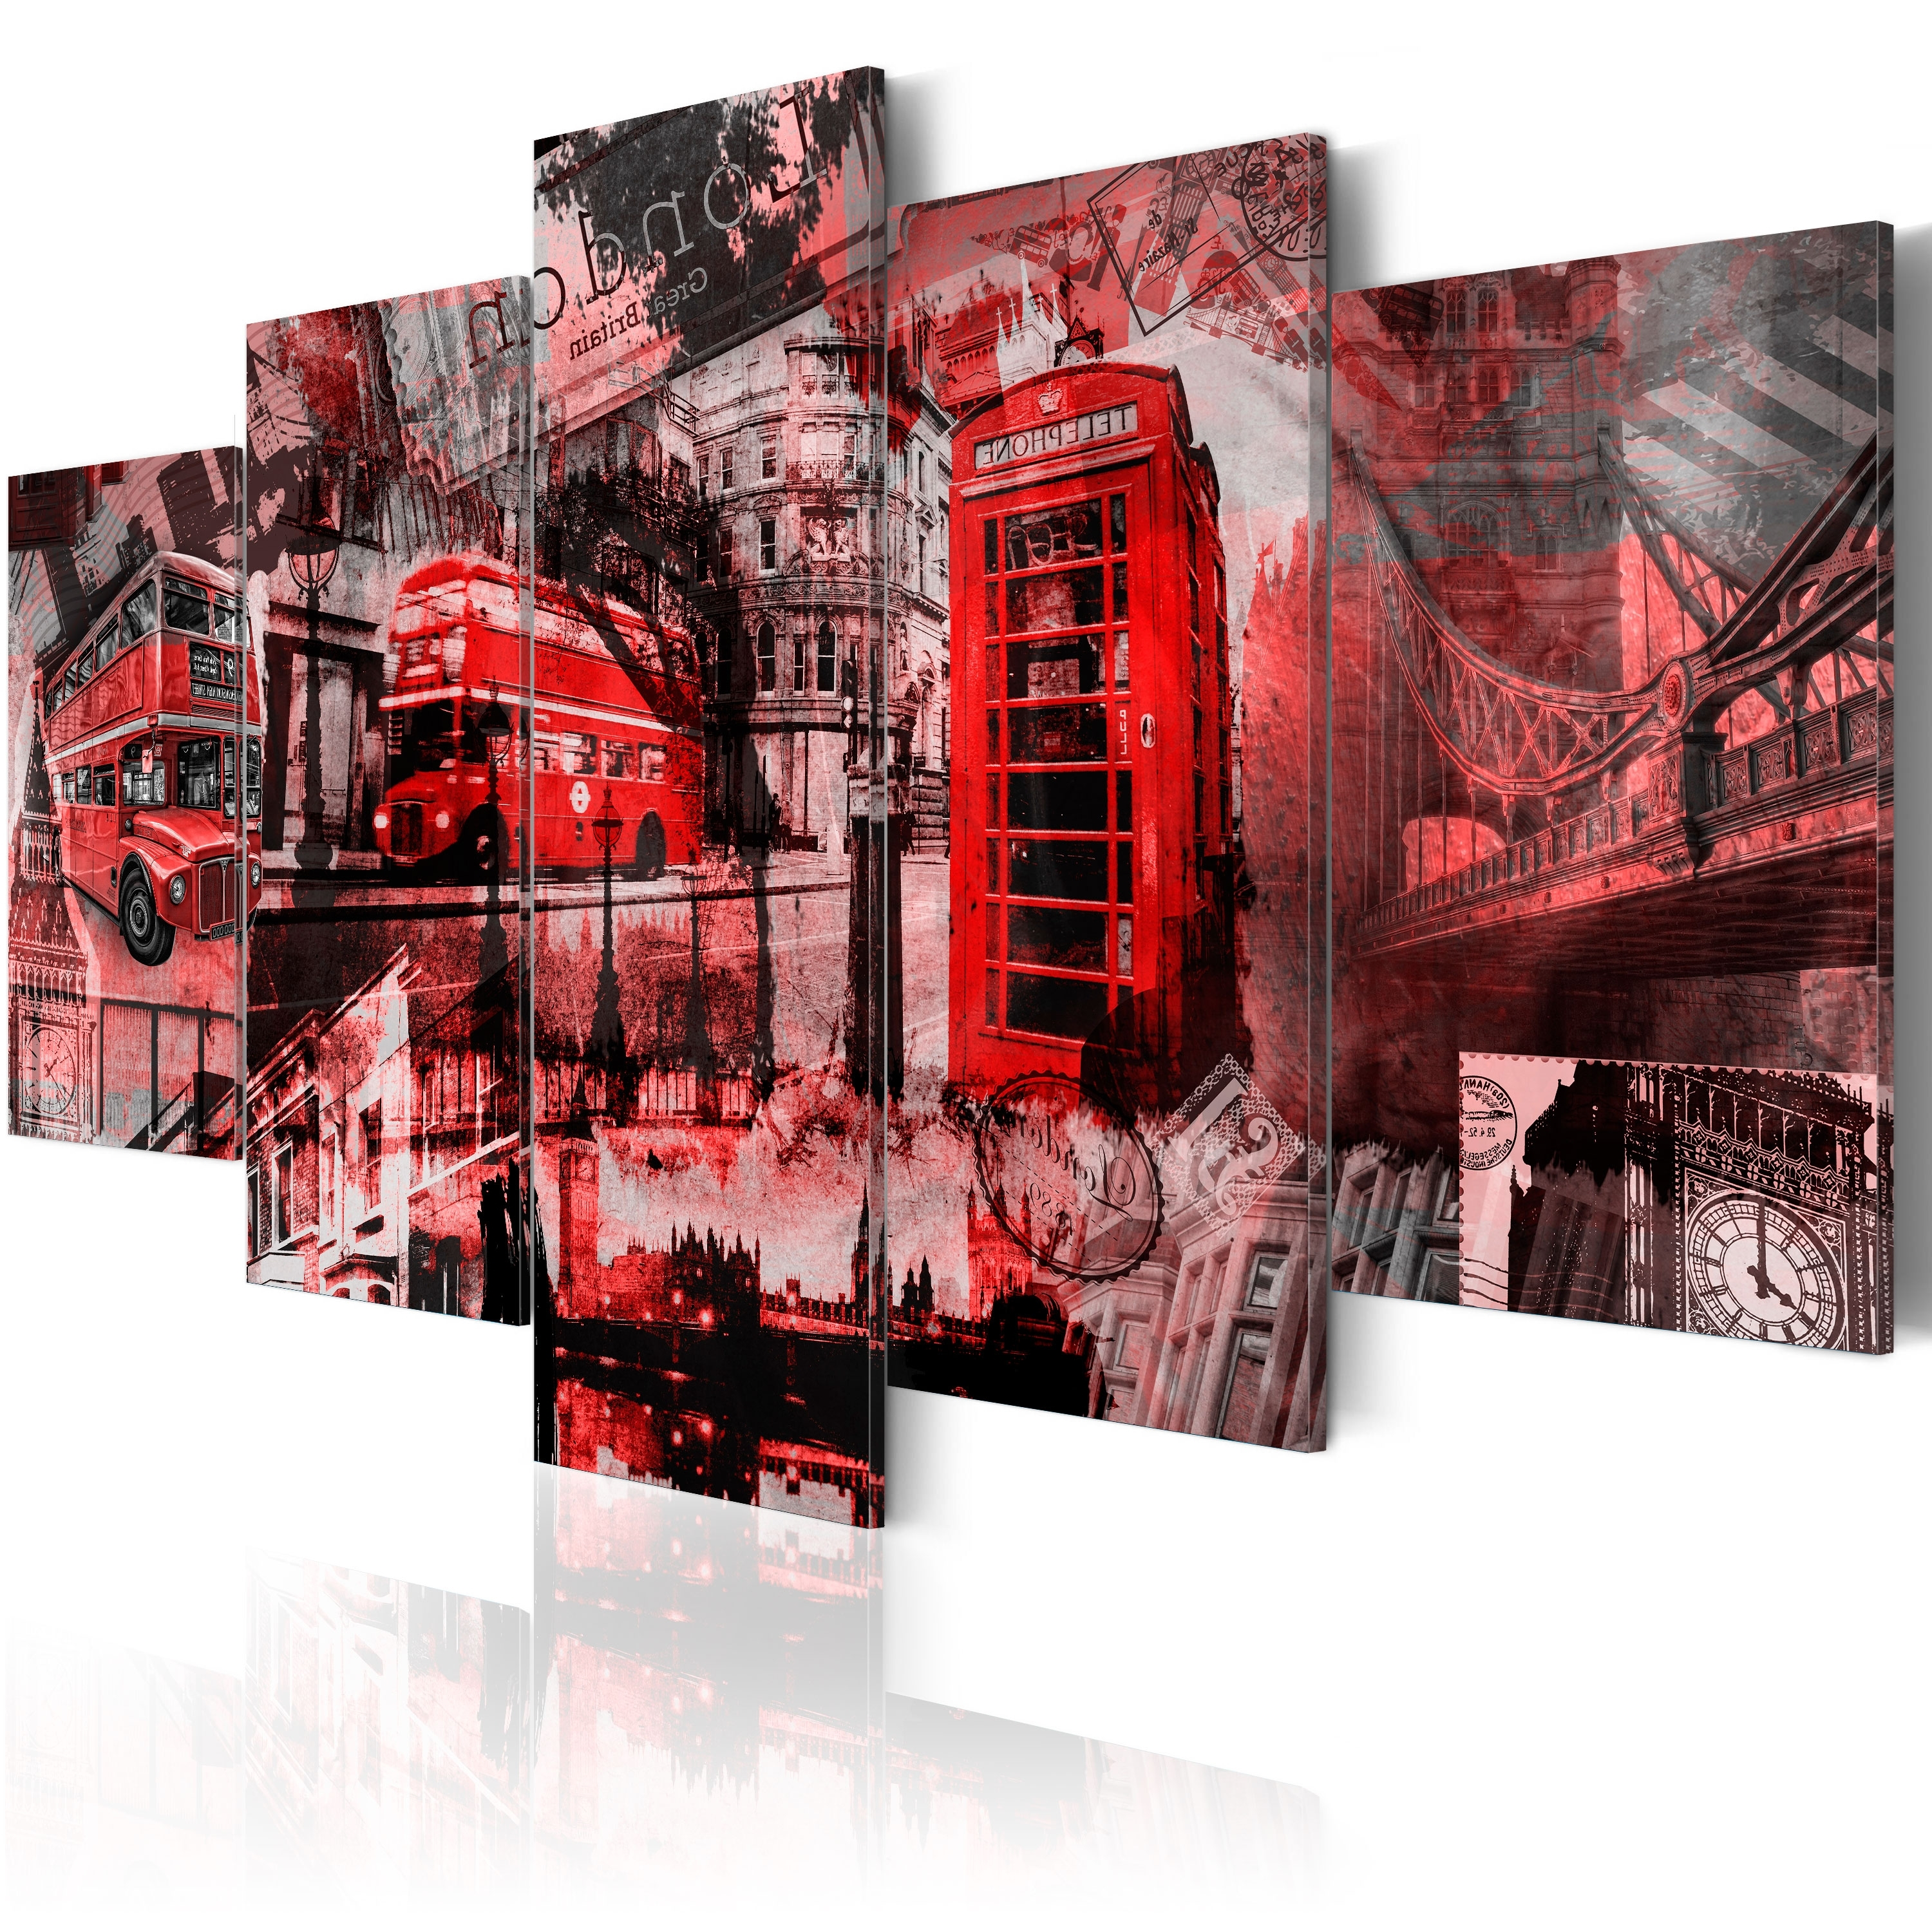 Preferred London Wall Art Throughout Canvas Wall Art Print Image Picture Photo London 030117 5 (Gallery 3 of 20)